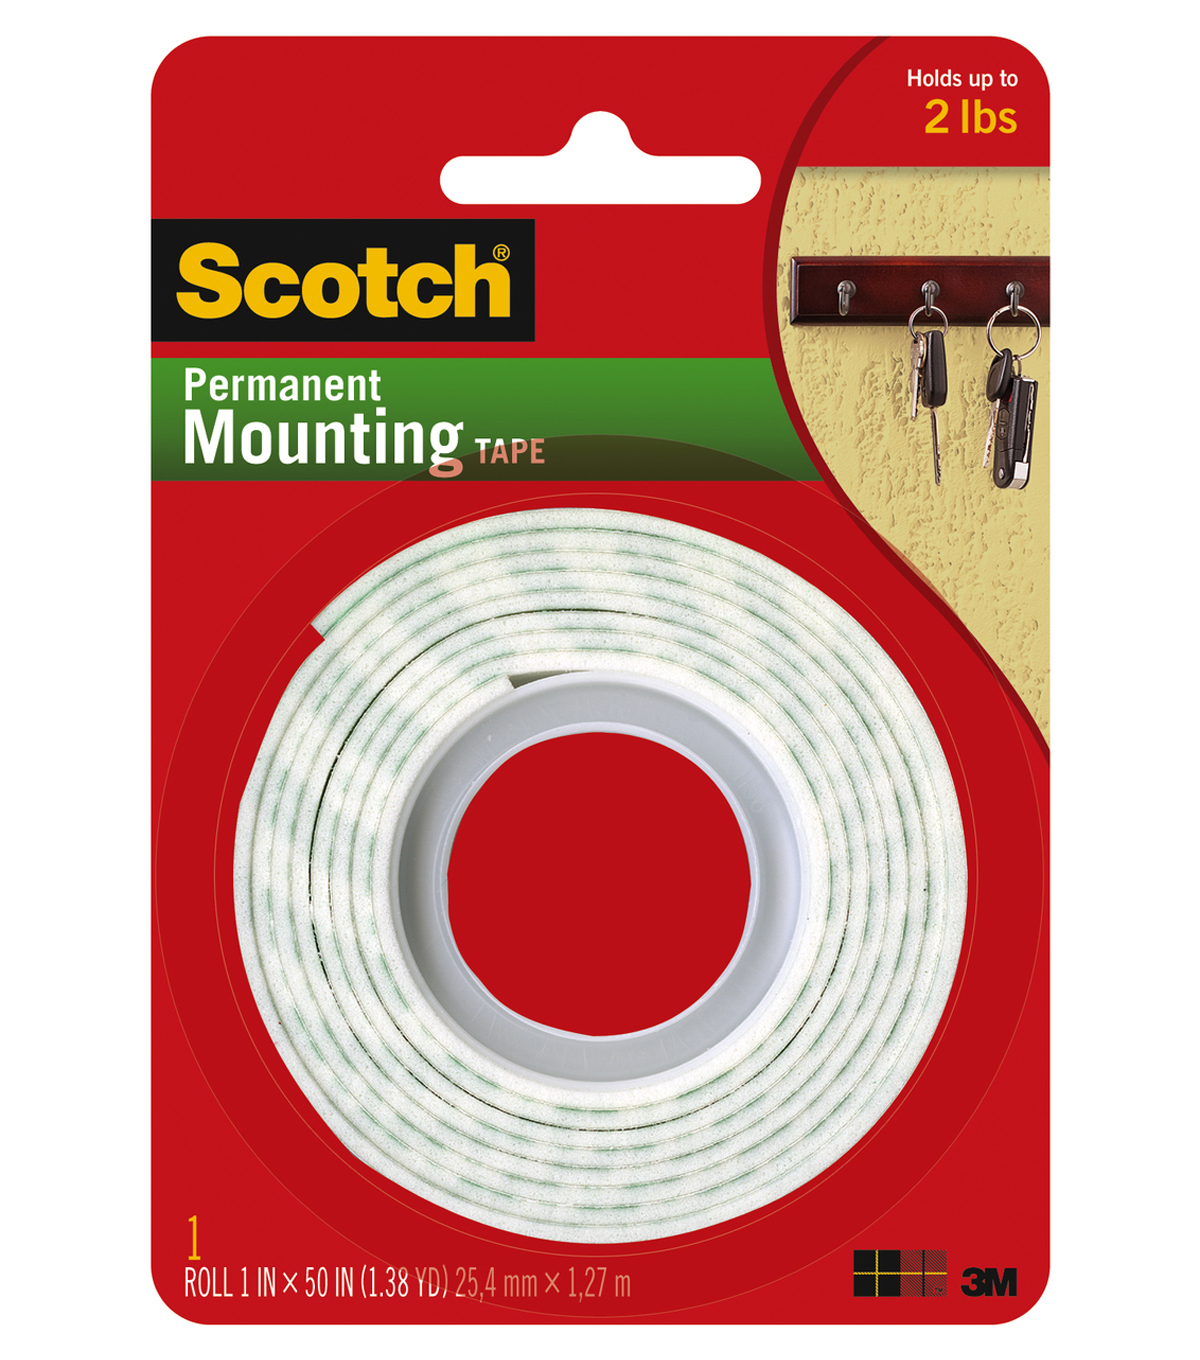 Scotch Mounting Tape-1 inch